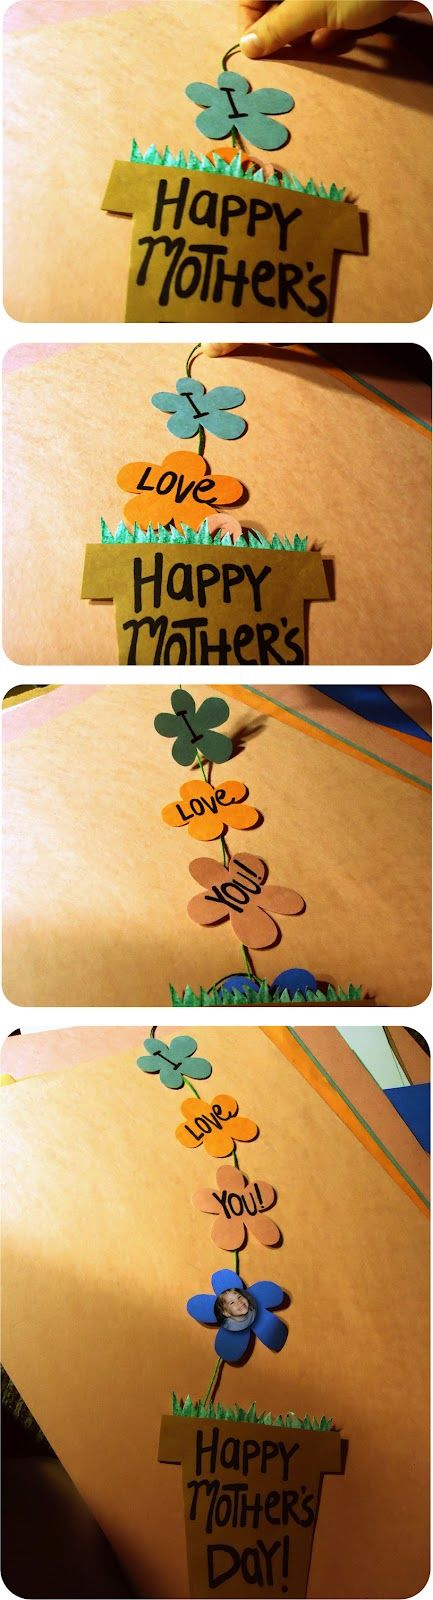 Happy Mother's Day flower pot card (I love the idea of helping kids of single moms [or dads] do crafts like this for their parents!)